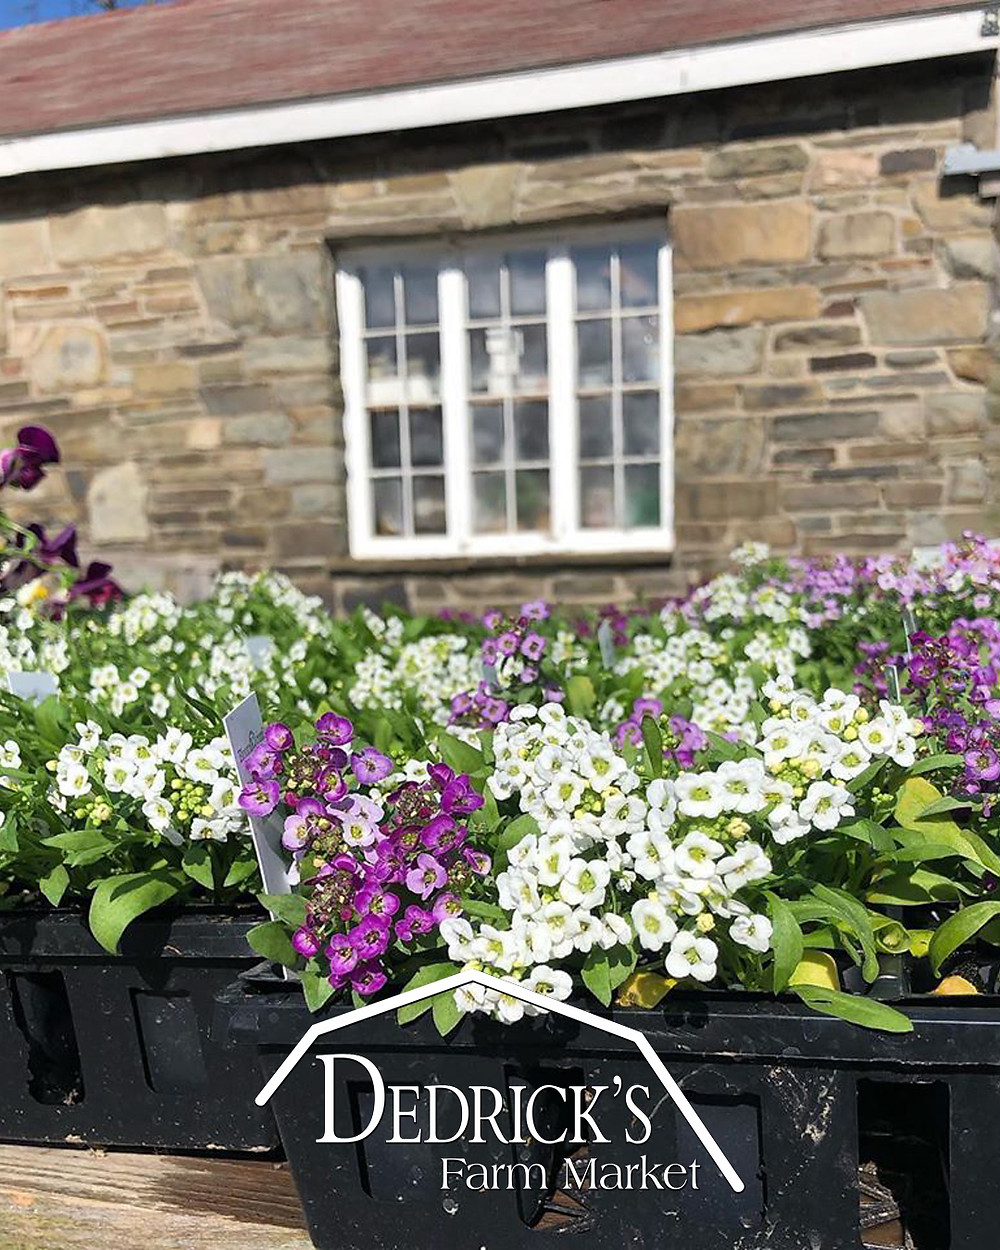 Sweet Alyssum, spring bedding plant, comes in many colors